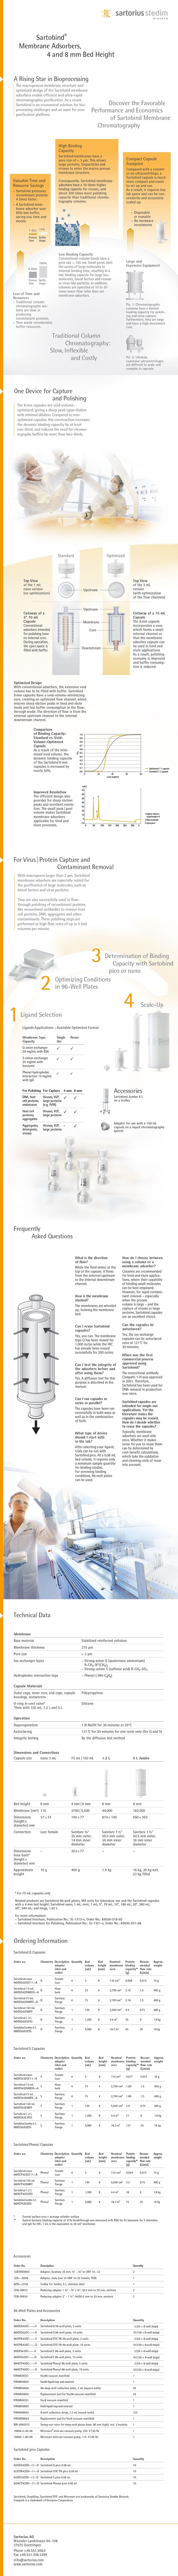 15 best training courses seminars images by sartorius on pinterest sartobind membrane adsorbers 4 and 8 mm bed hight discover the favorable performance and economics of sartobind membrane chromatography fandeluxe Gallery